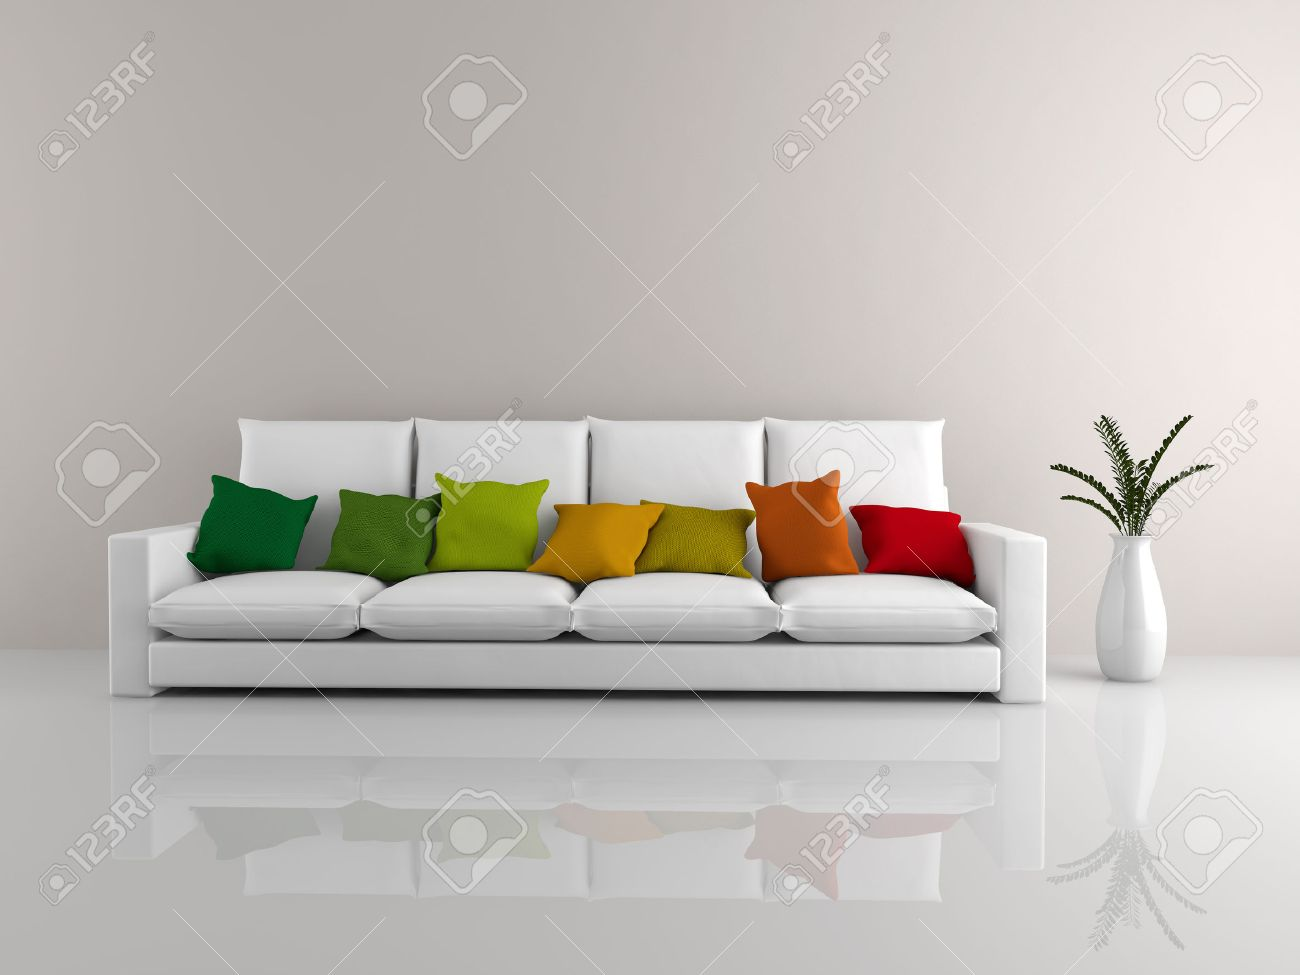 Sensational A Room With A Minimalist White Sofa Covered In Colorful Pillows Unemploymentrelief Wooden Chair Designs For Living Room Unemploymentrelieforg